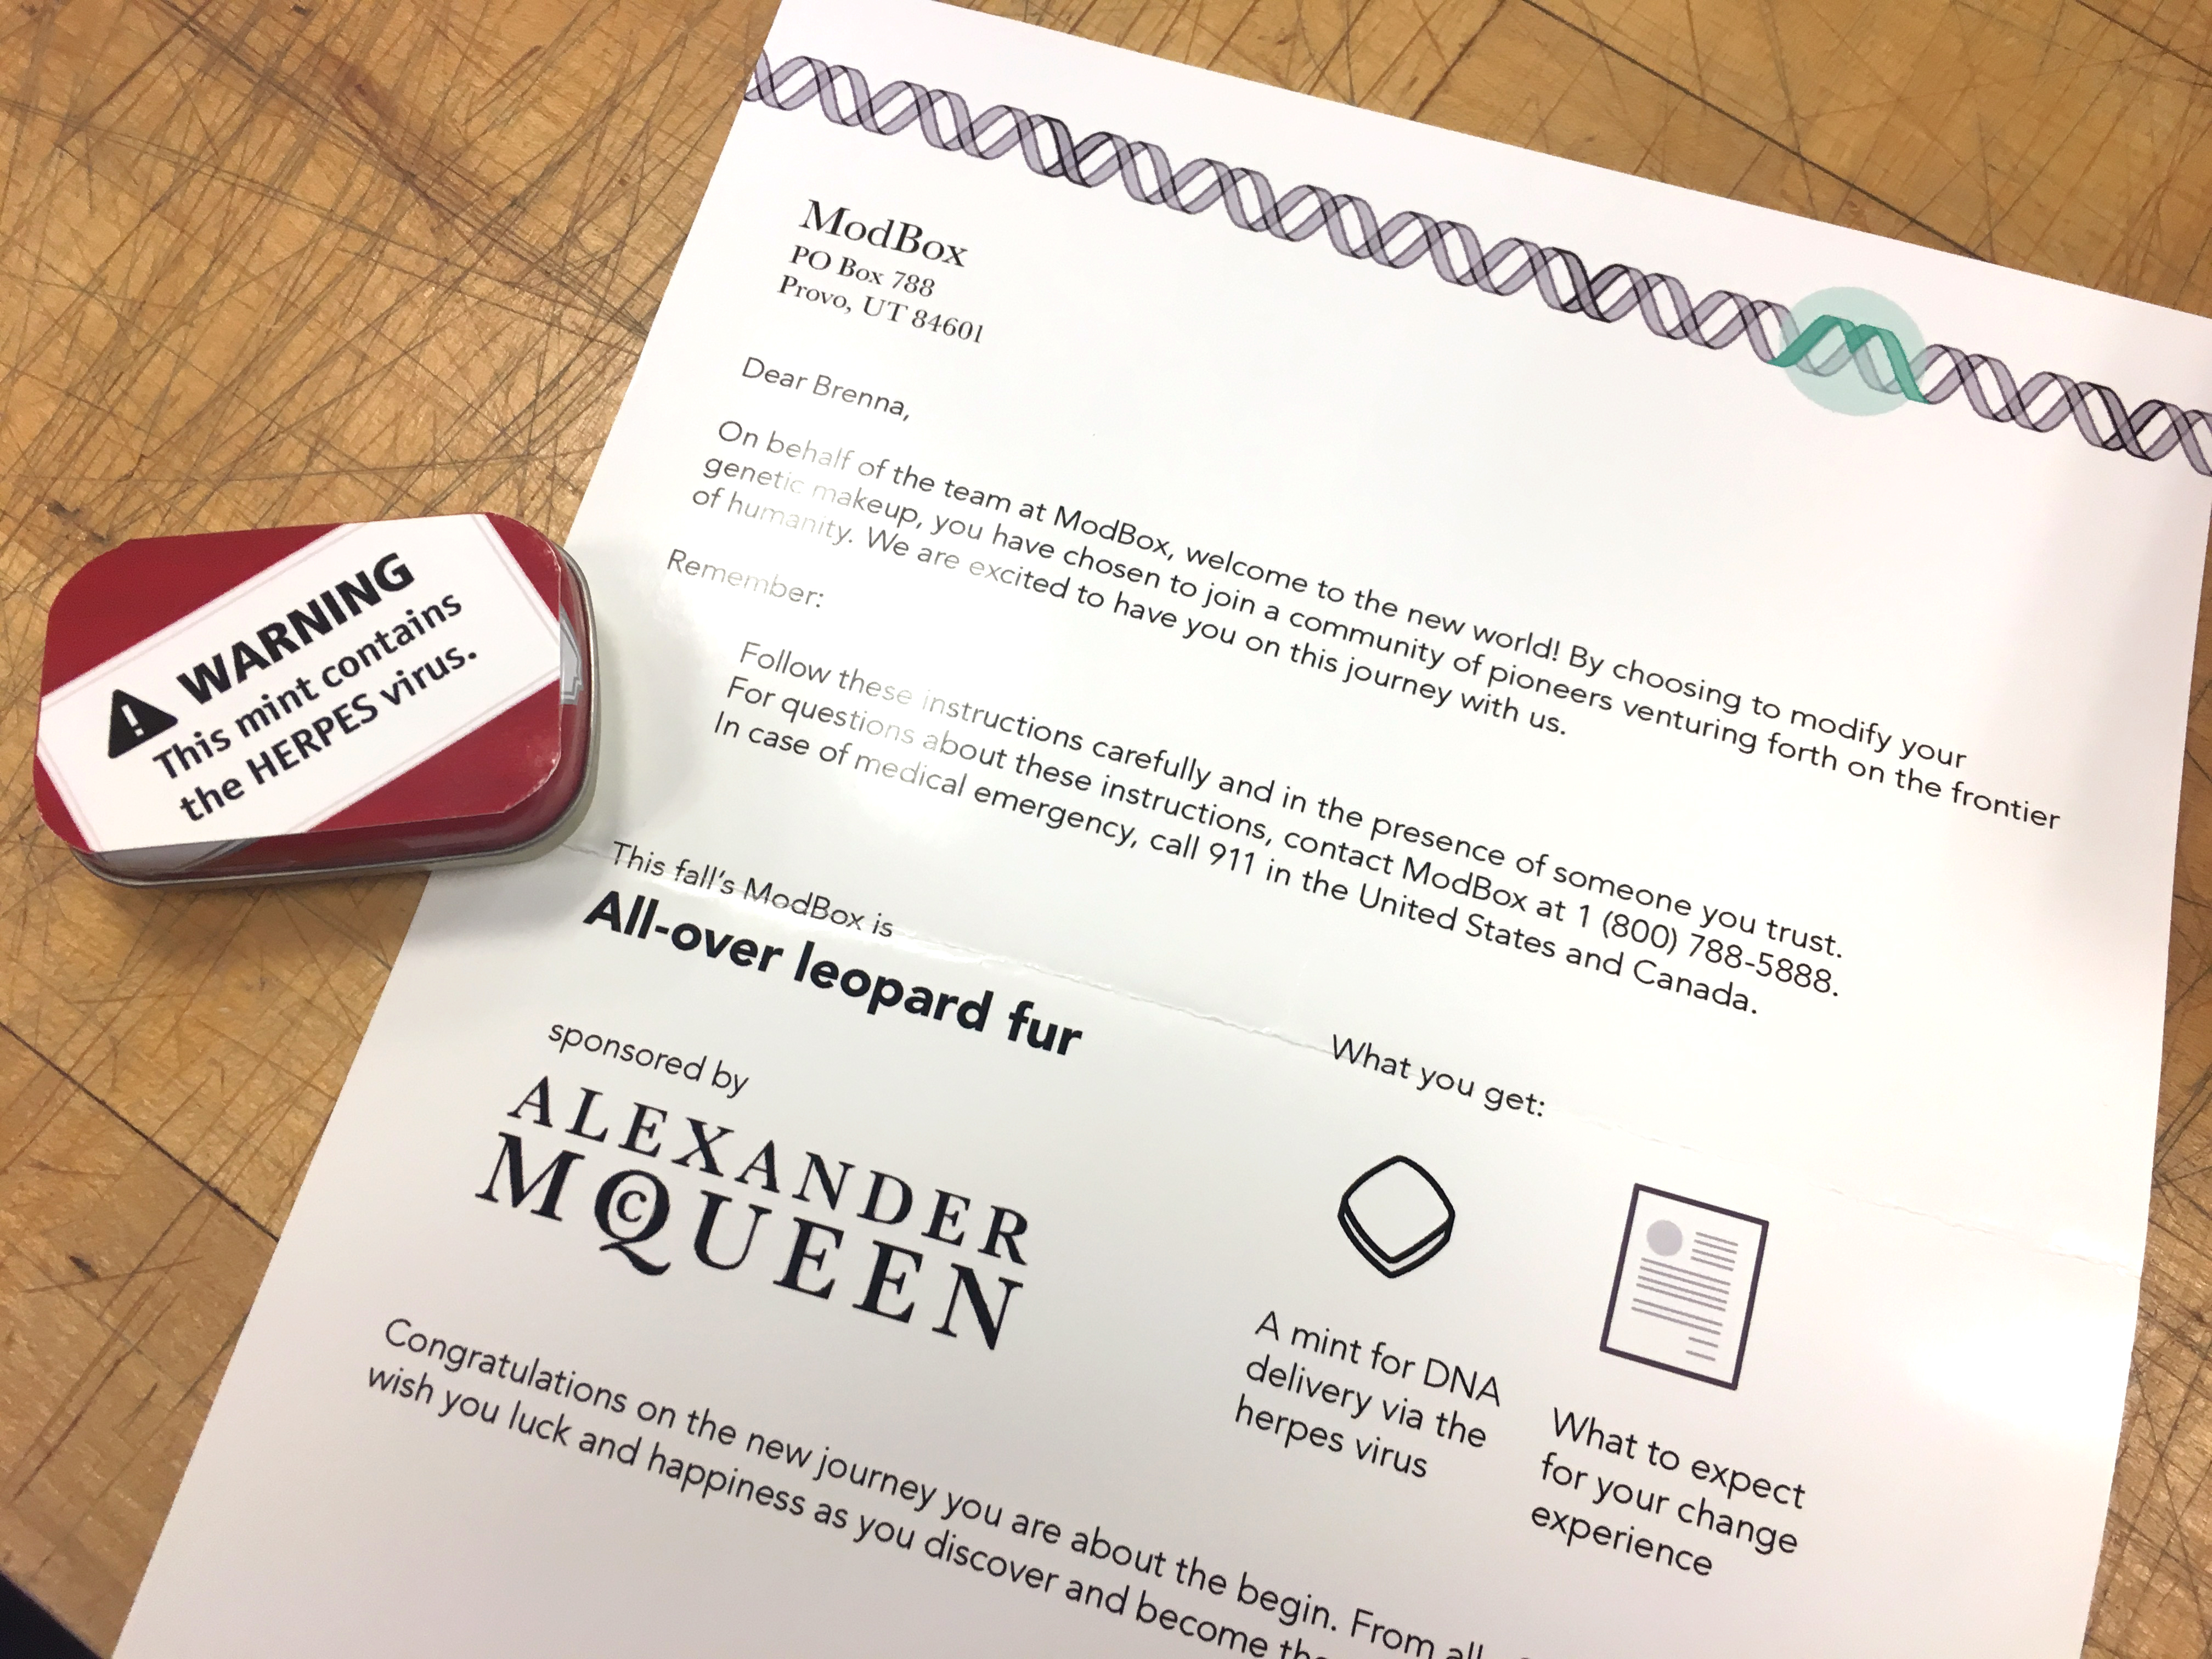 A letter welcomes another customer to the frontier of humanity with supplies to genetically modify a human with all-over leopard fur. It's sponsored by Alexander McQueen. There is a mint tin that contains the herpes virus, how the genetic modifcation is delivered.